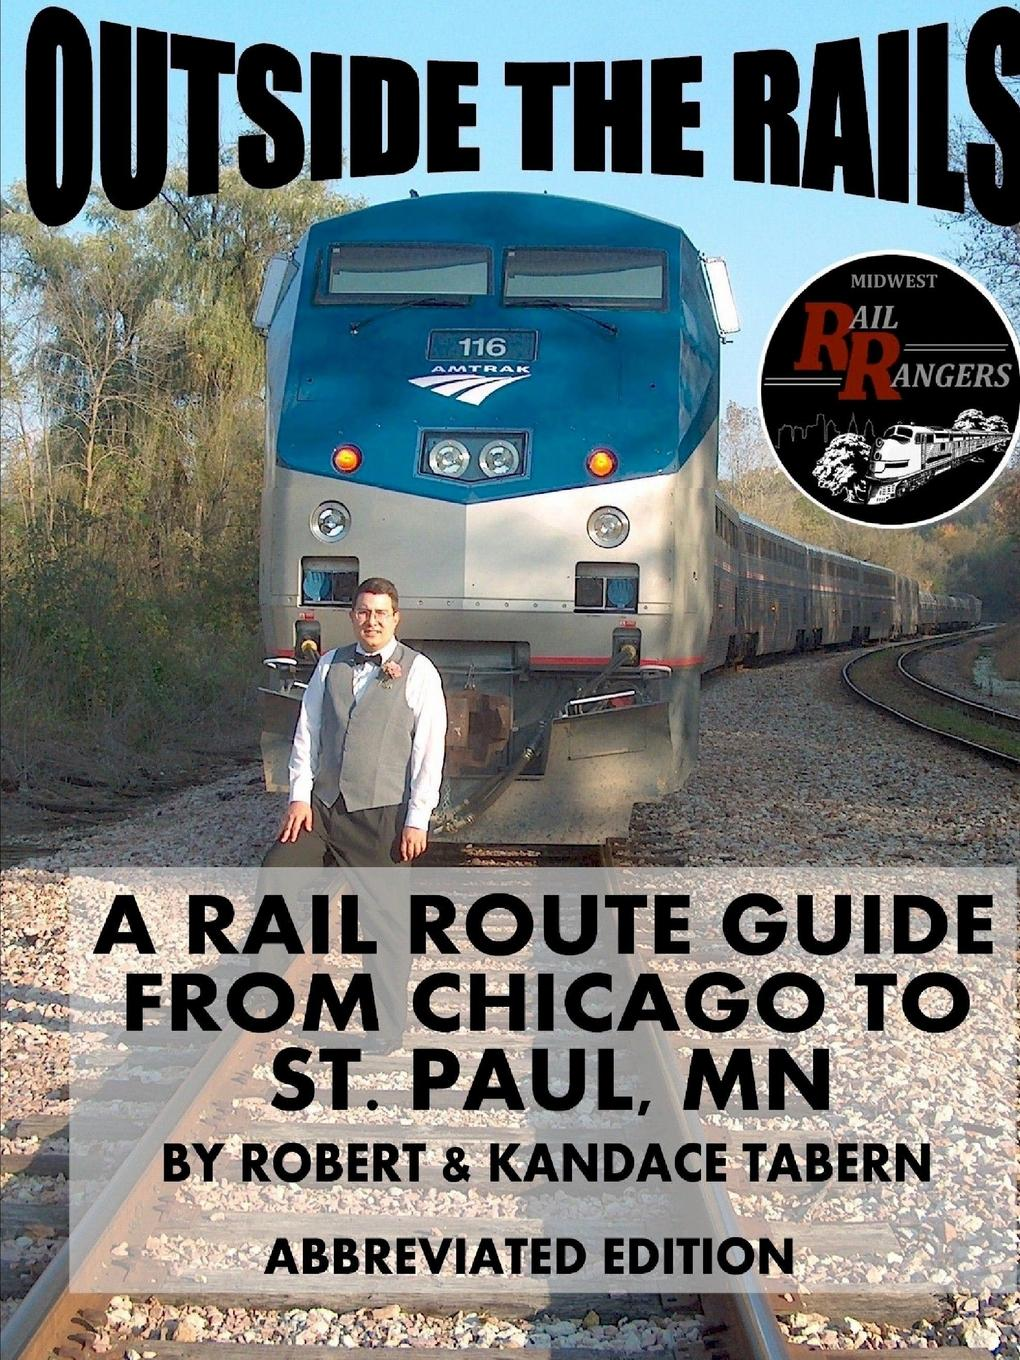 Robert Tabern, Kandace Tabern Outside the Rails. A Rail Route Guide from Chicago to St. Paul, MN (ABBREVIATED EDITION)